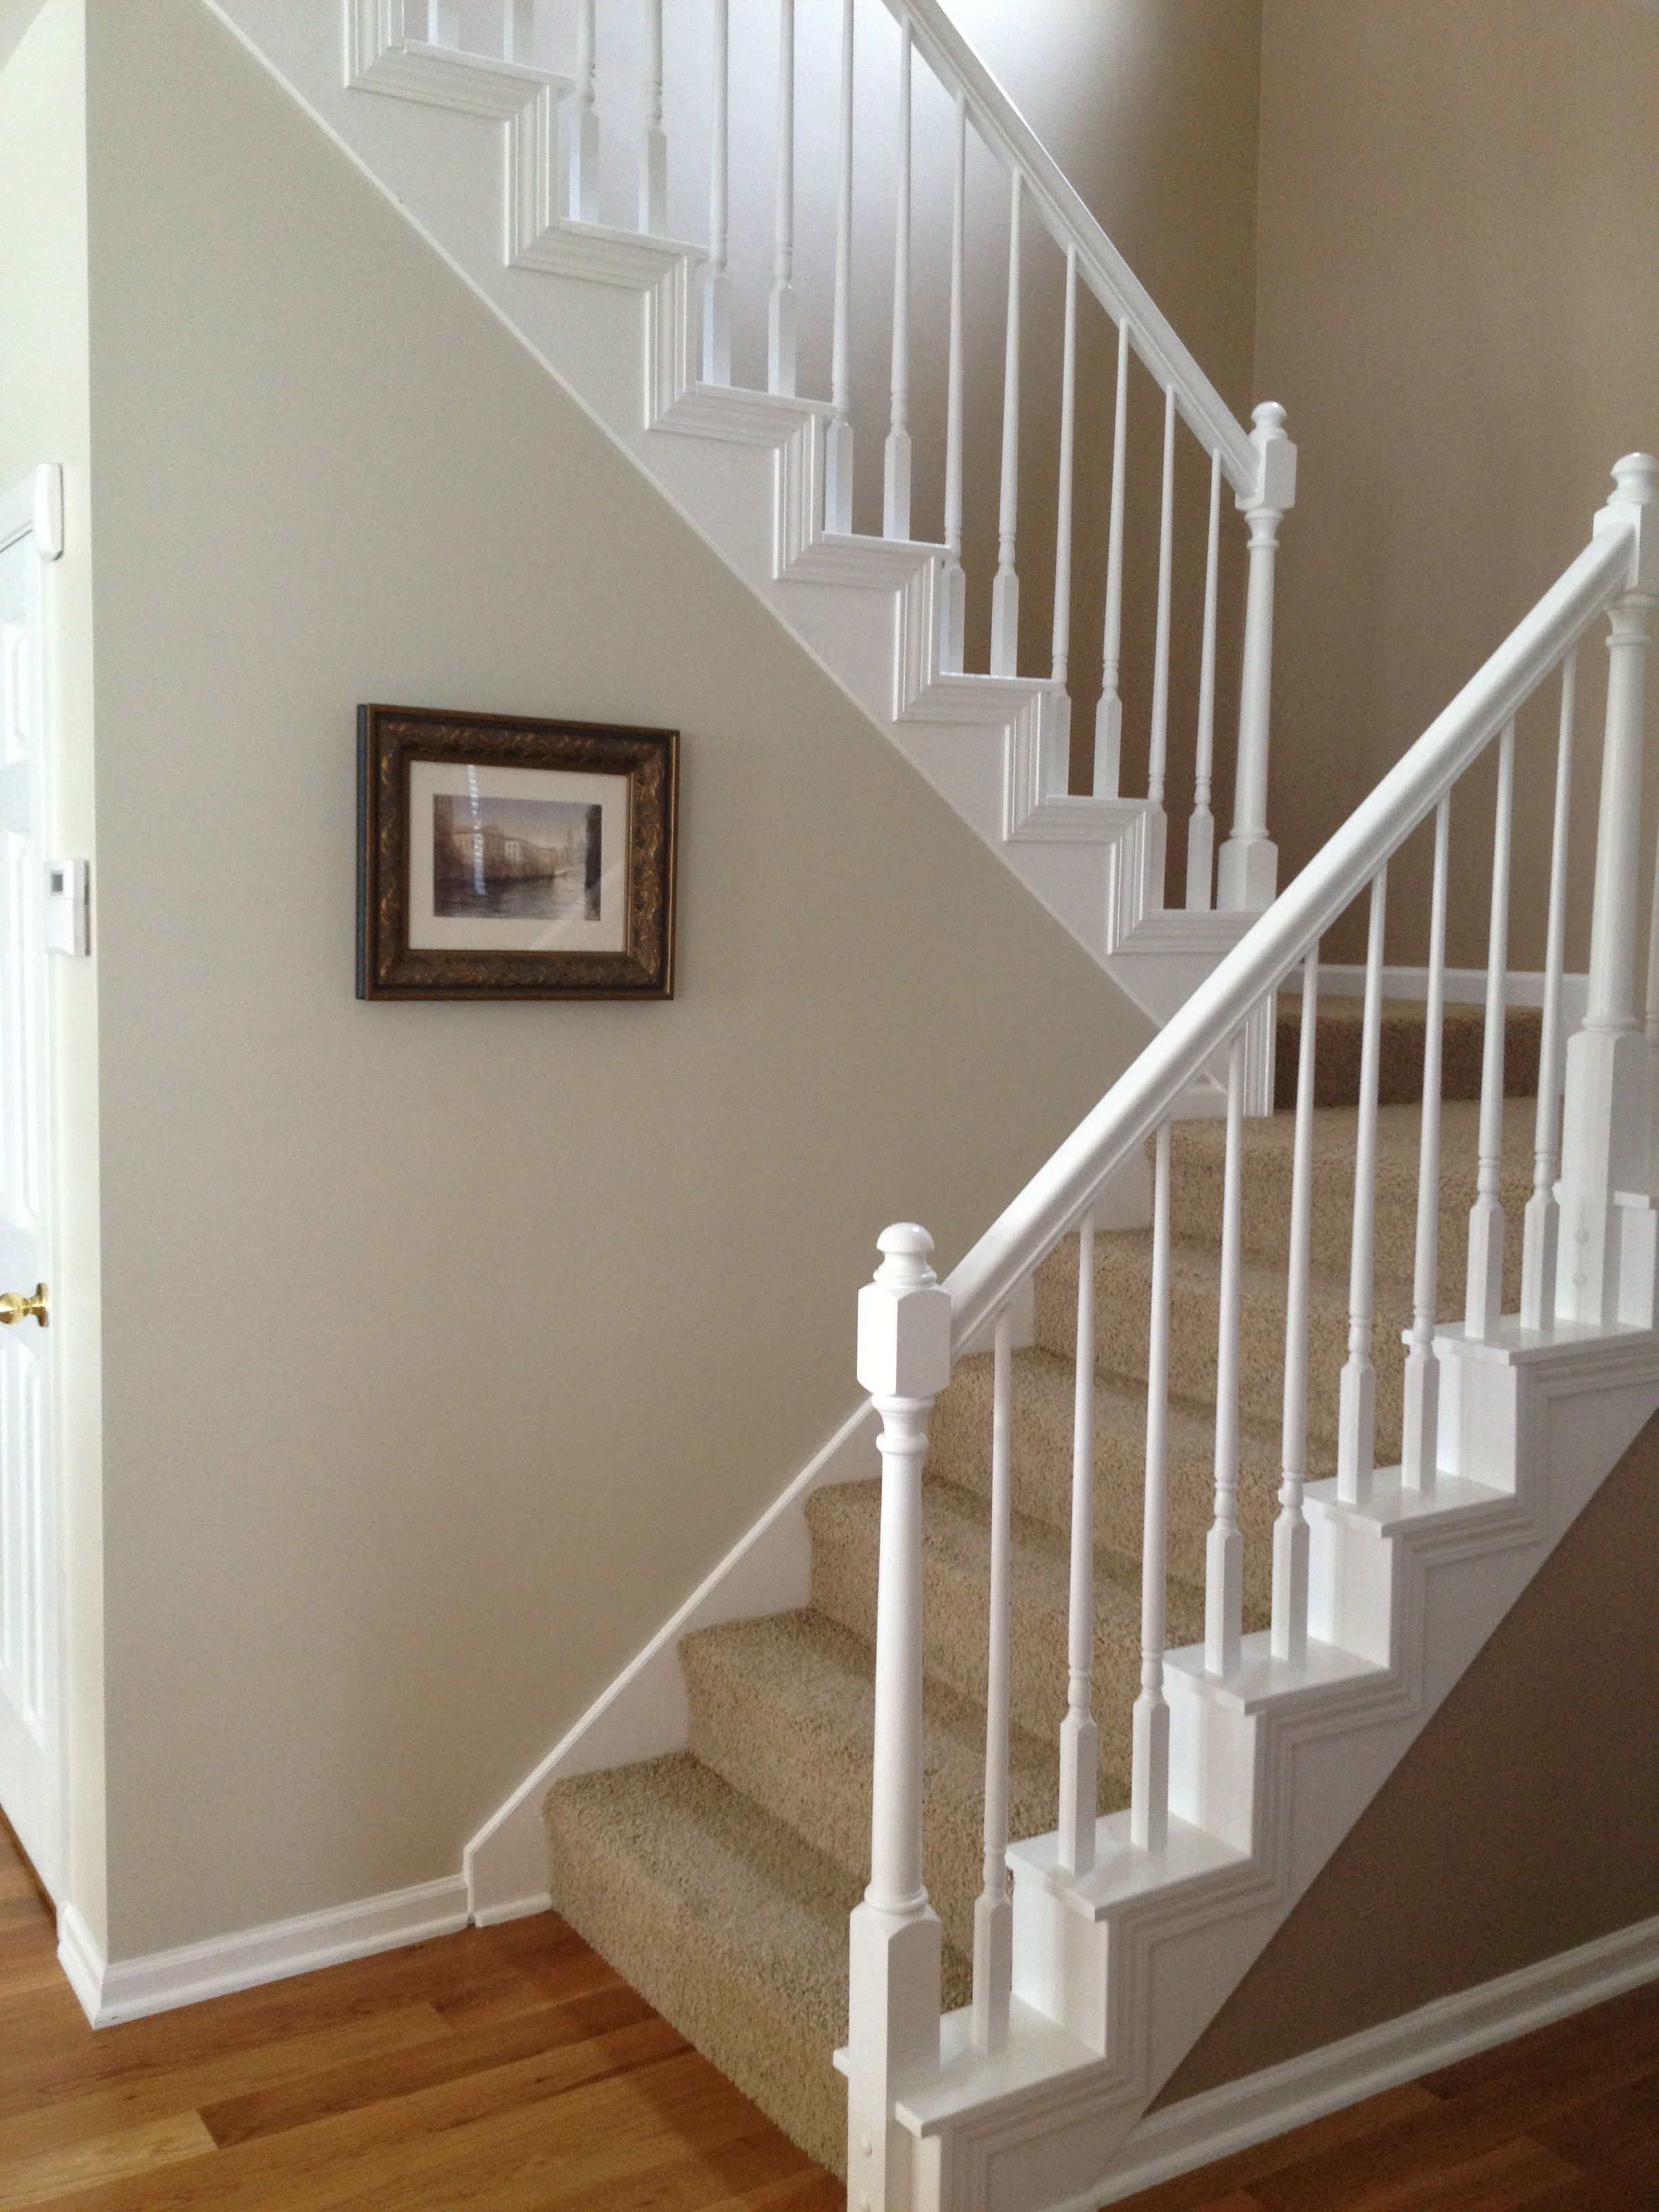 Home Tour: The Staircase and Hallway | GREEN DOOR DESIGN CO.